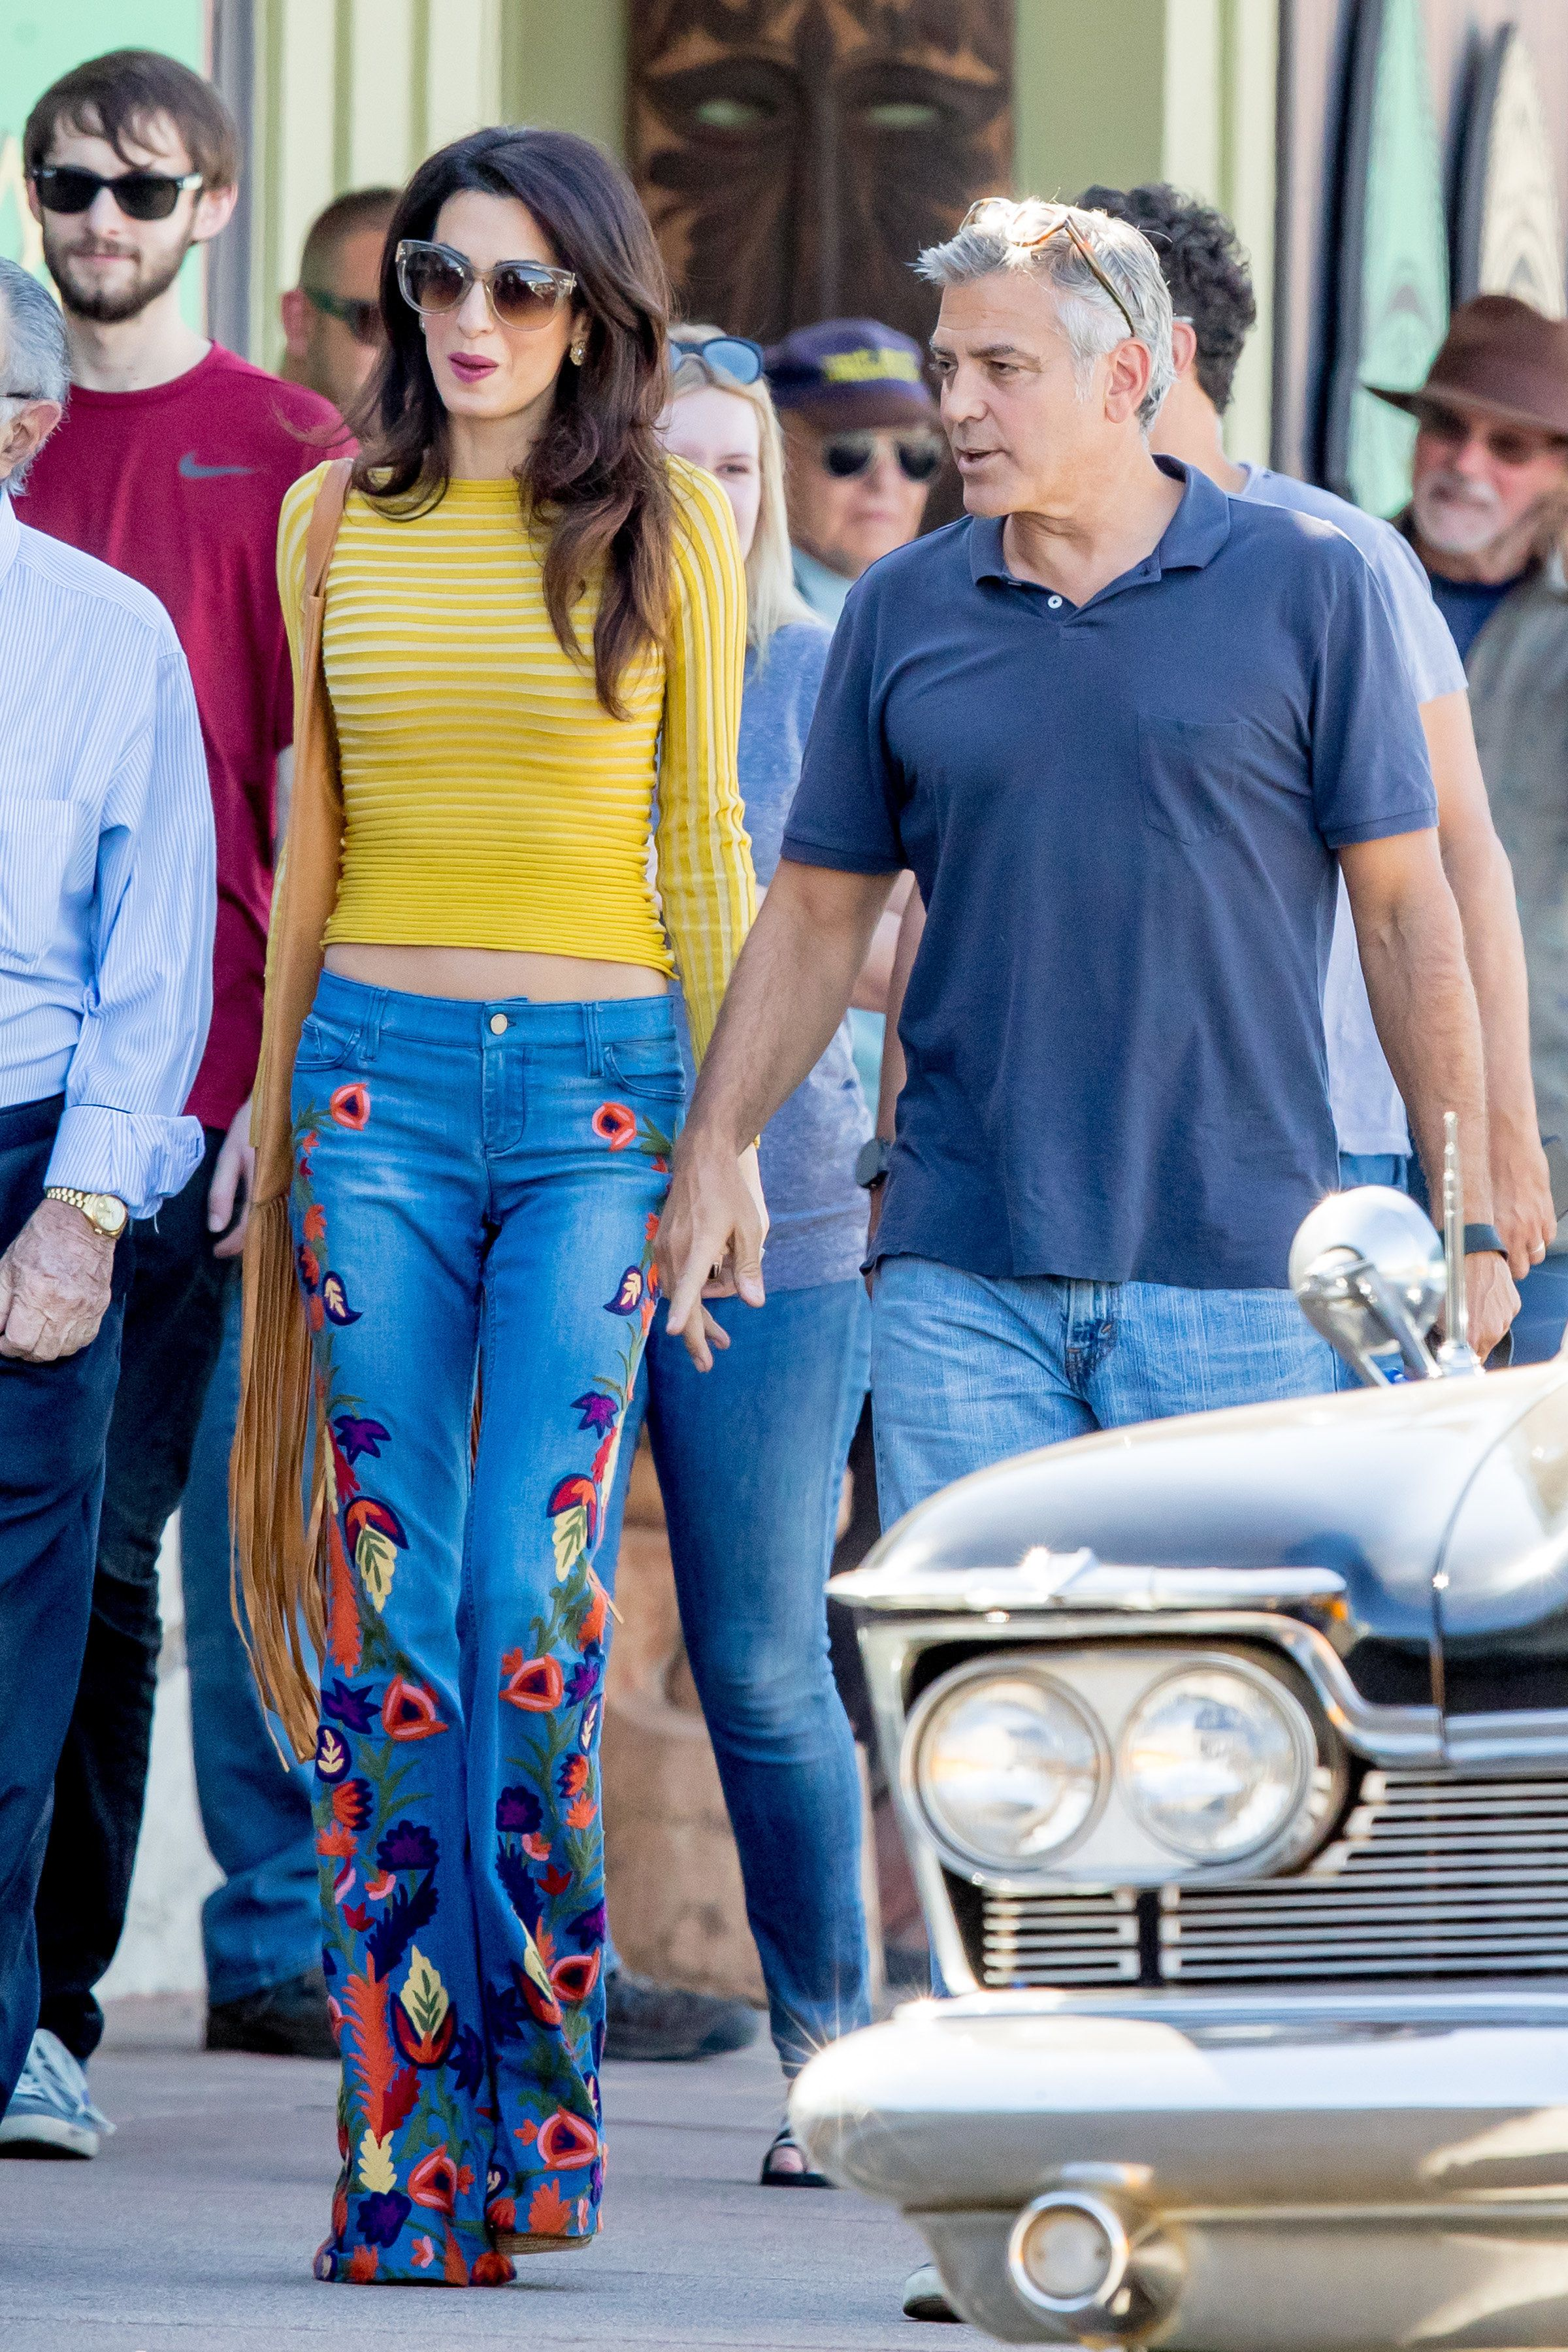 George Clooney and wife Amal Cooney seen holding hands as they walked their dog on the set of Suburbicon in Los Angeles, CA